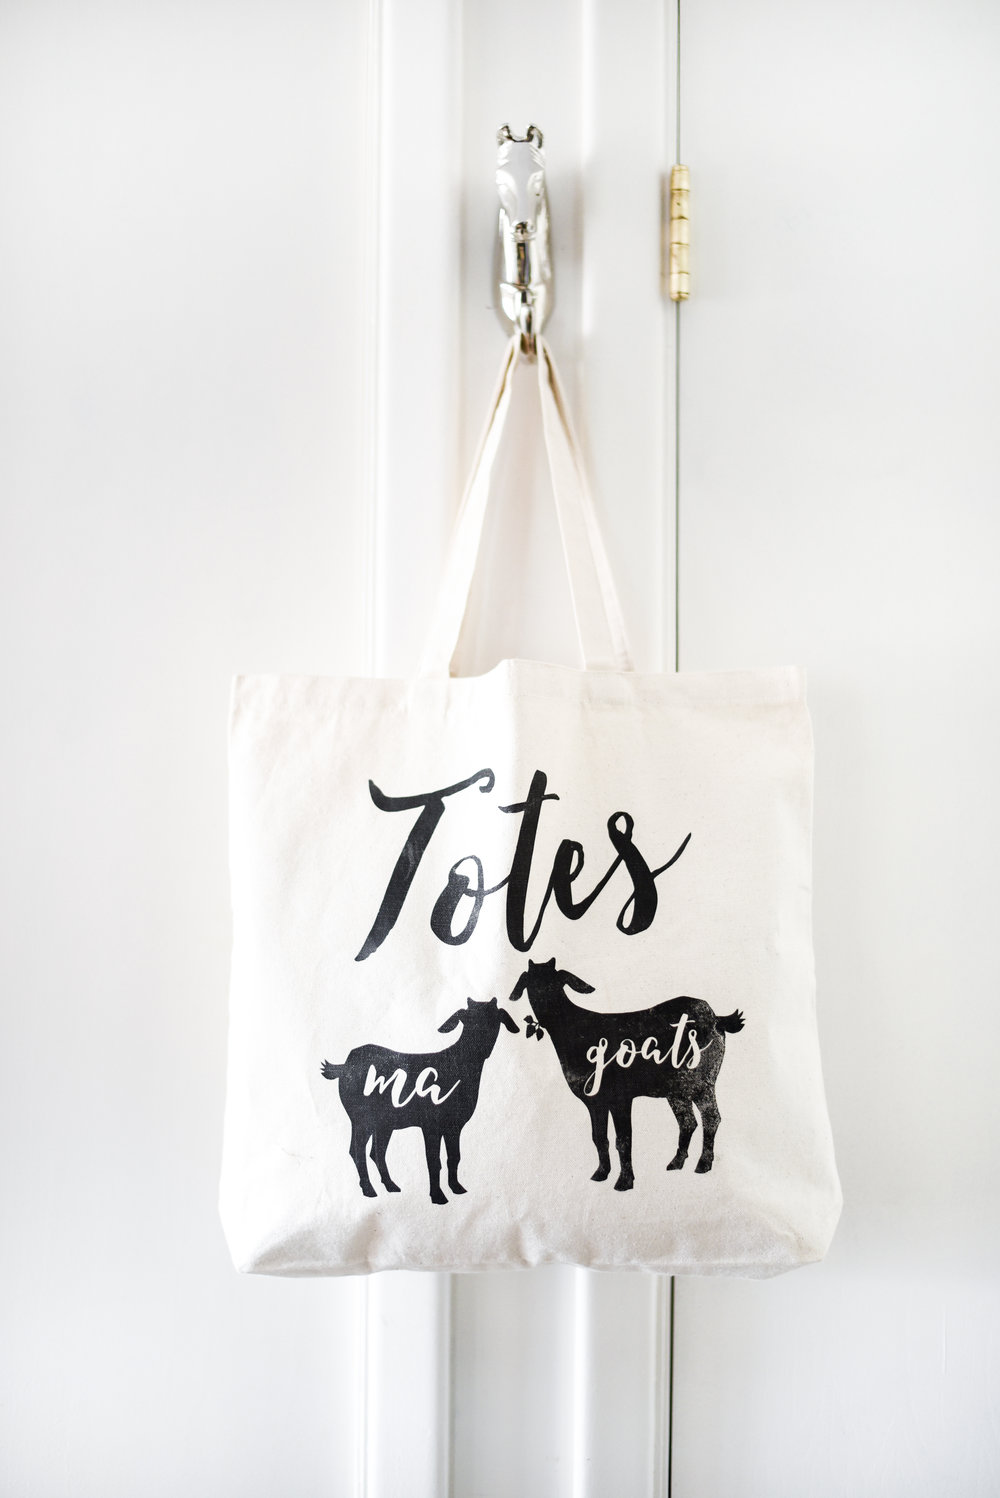 DIY Totes Ma Goats bag - such a cute gift idea for goat lovers! boxwoodavenue.com